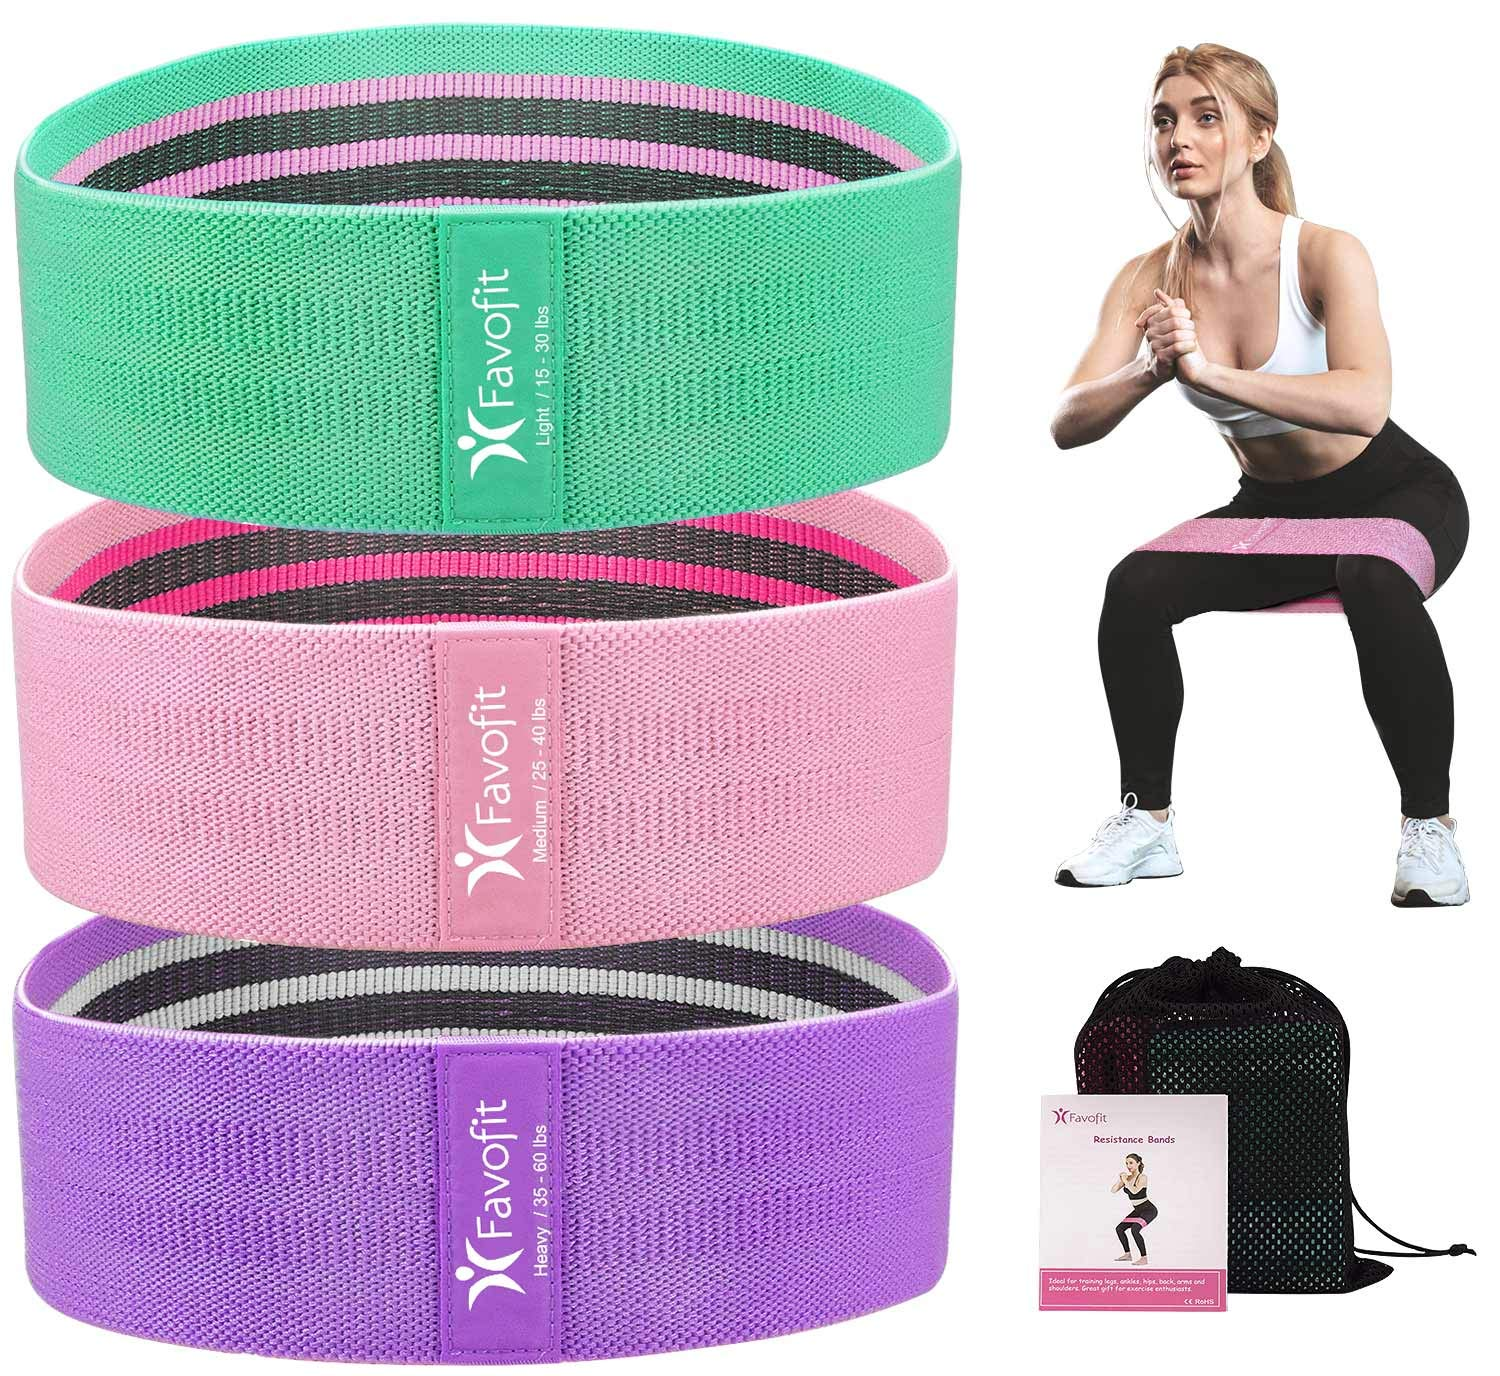 Favofit Resistance Bands Set for Legs and Butt, 3 Pack Non-Slip Workout Fitness Resistance Bands for Men and Women, Fabric Excersice Loop Bands with Action Guide and Carry Bag, Mint/Pink/Purple